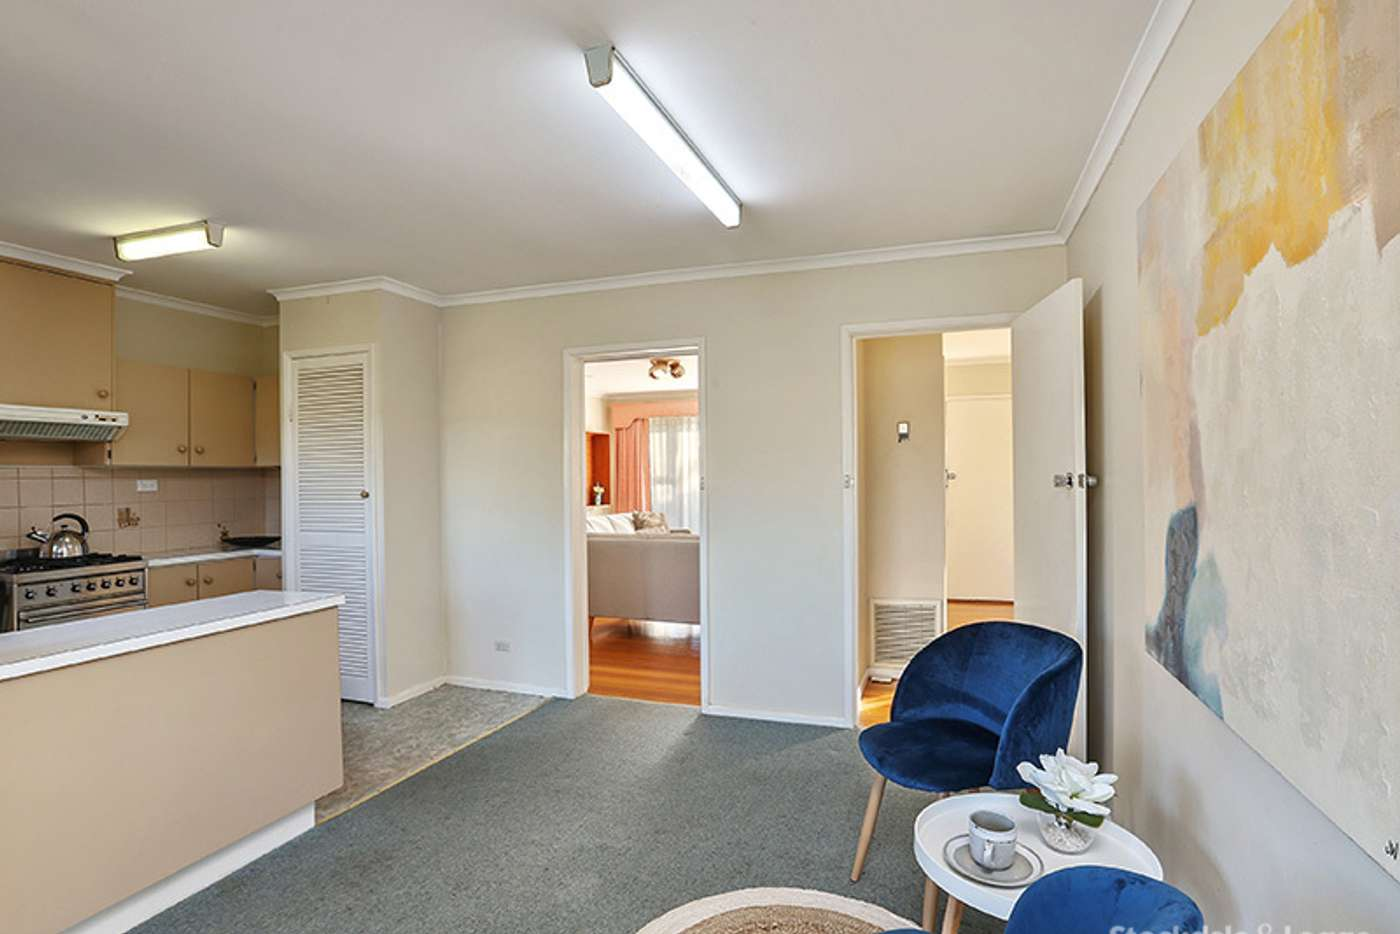 Sixth view of Homely house listing, 7 Konrads Crescent, Highton VIC 3216